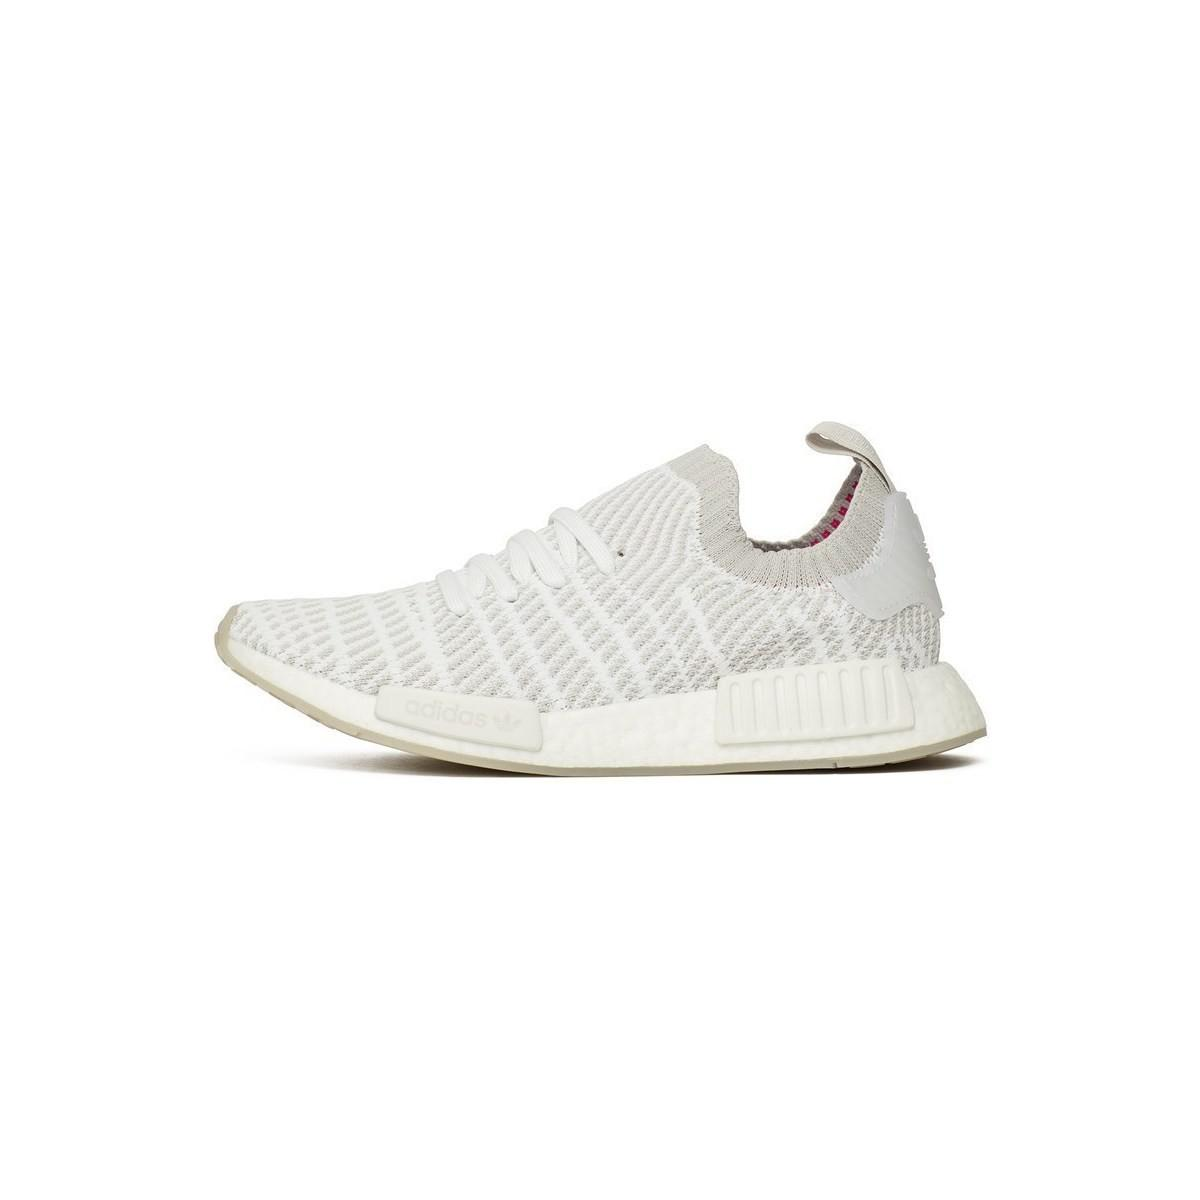 ec2275253 adidas Nmd R1 Stlt Primeknit Men s Shoes (trainers) In White in ...